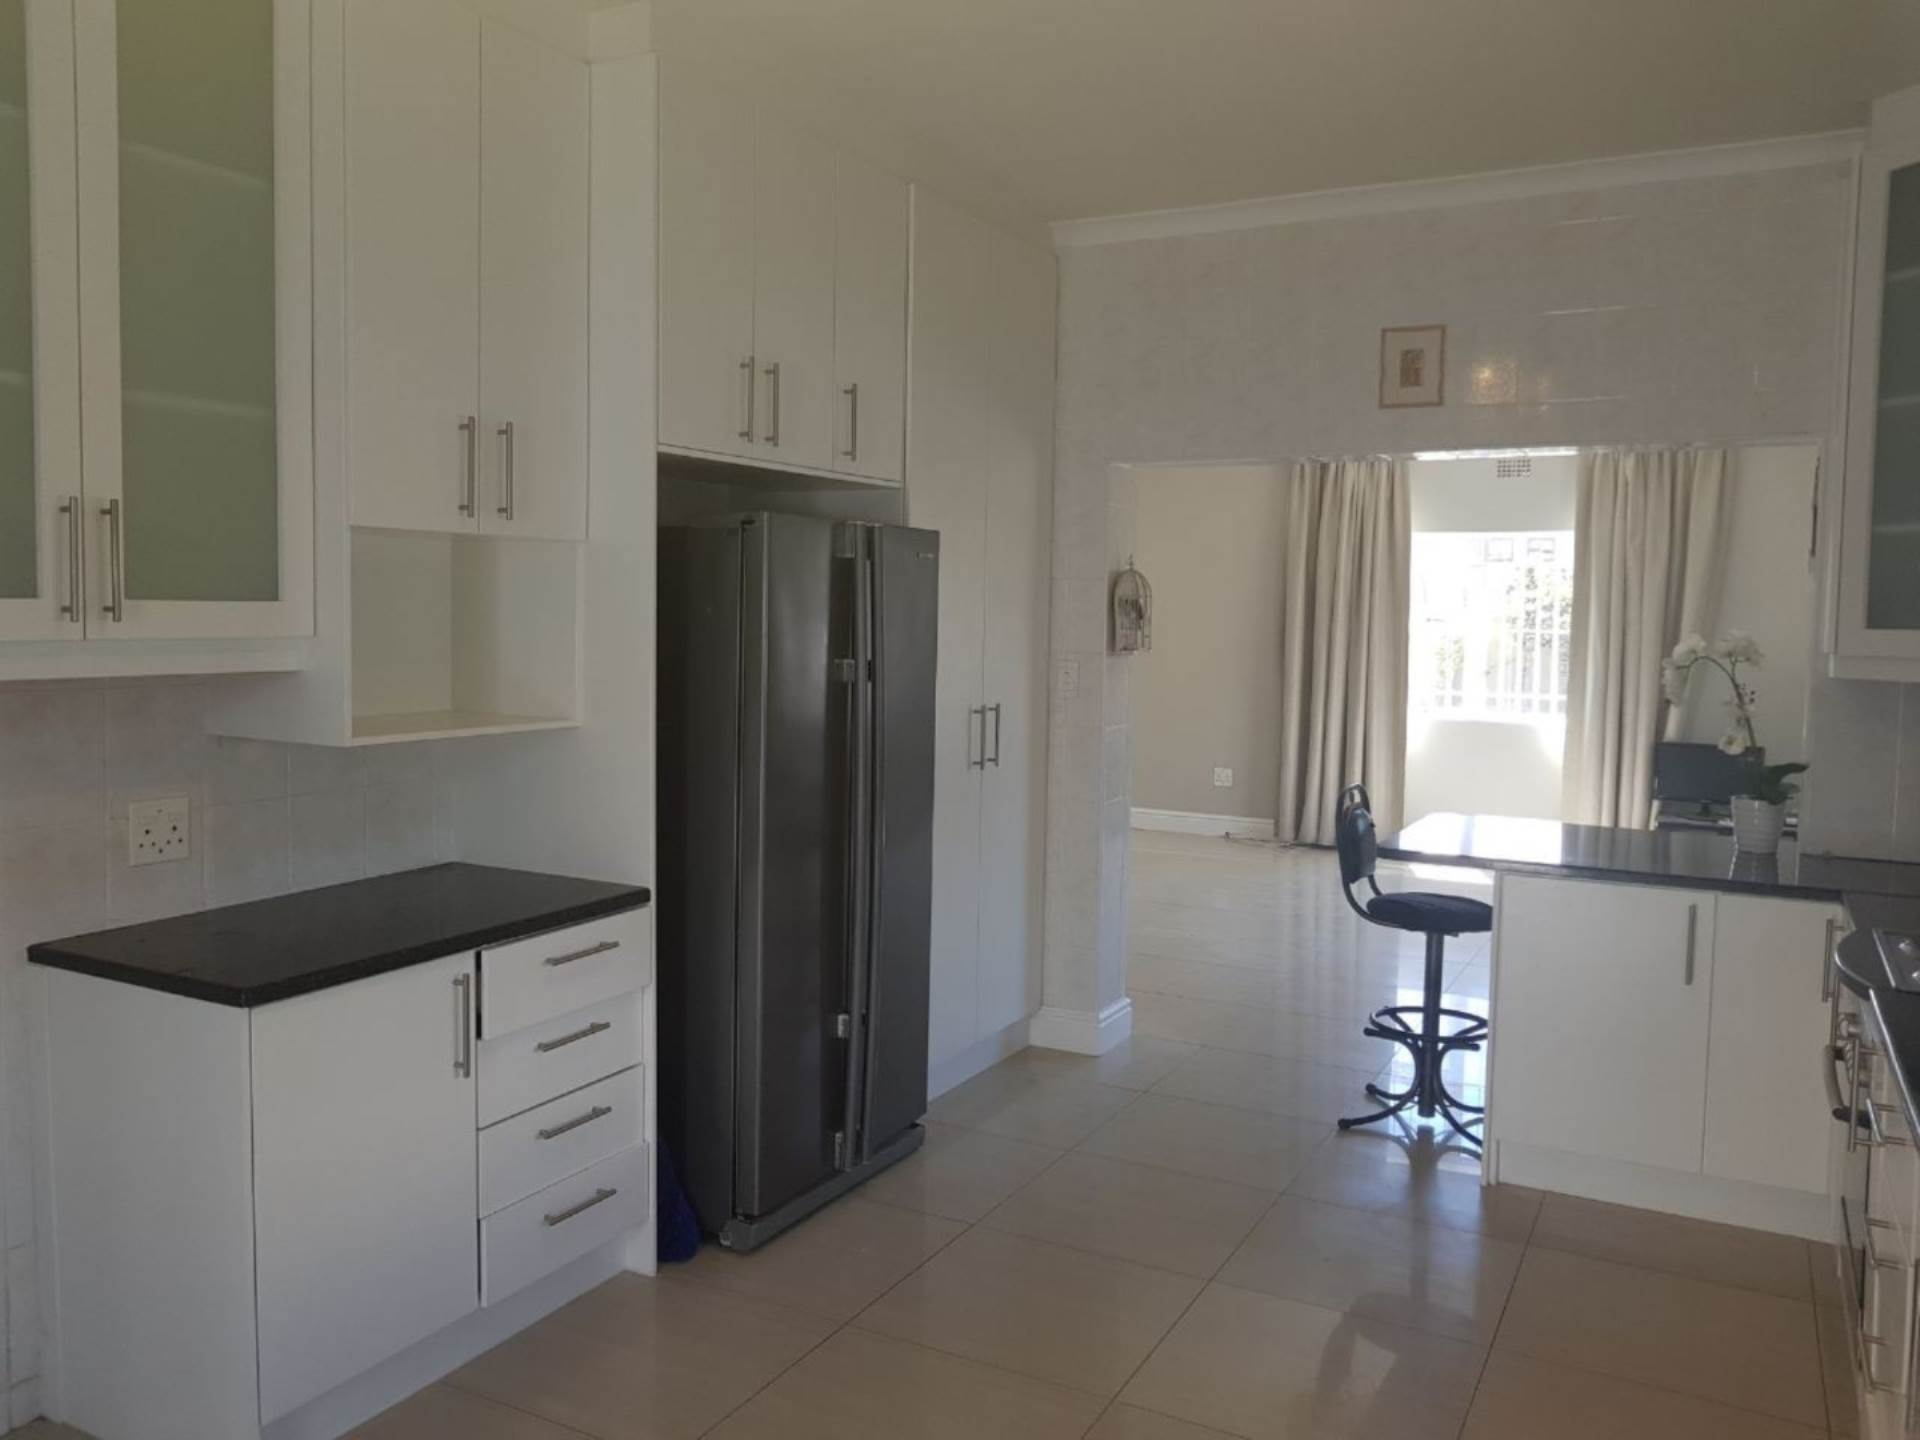 Milnerton Ridge property for sale. Ref No: 13622442. Picture no 5